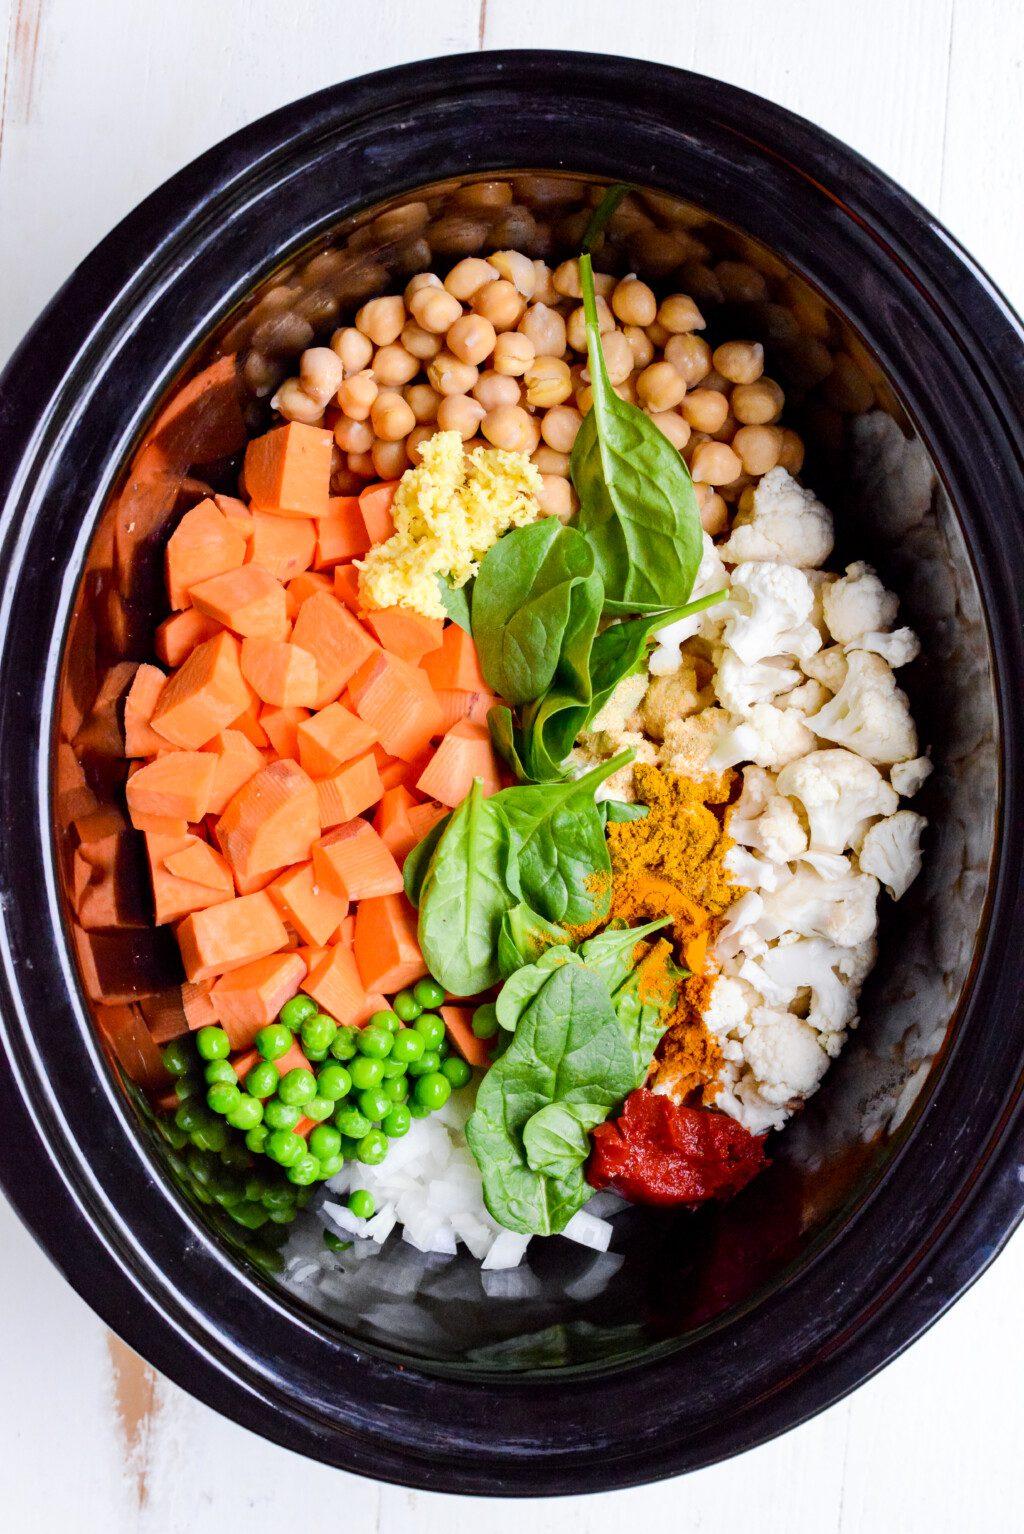 top down view of ingredients for slow cooker vegetable curry in black crockpot